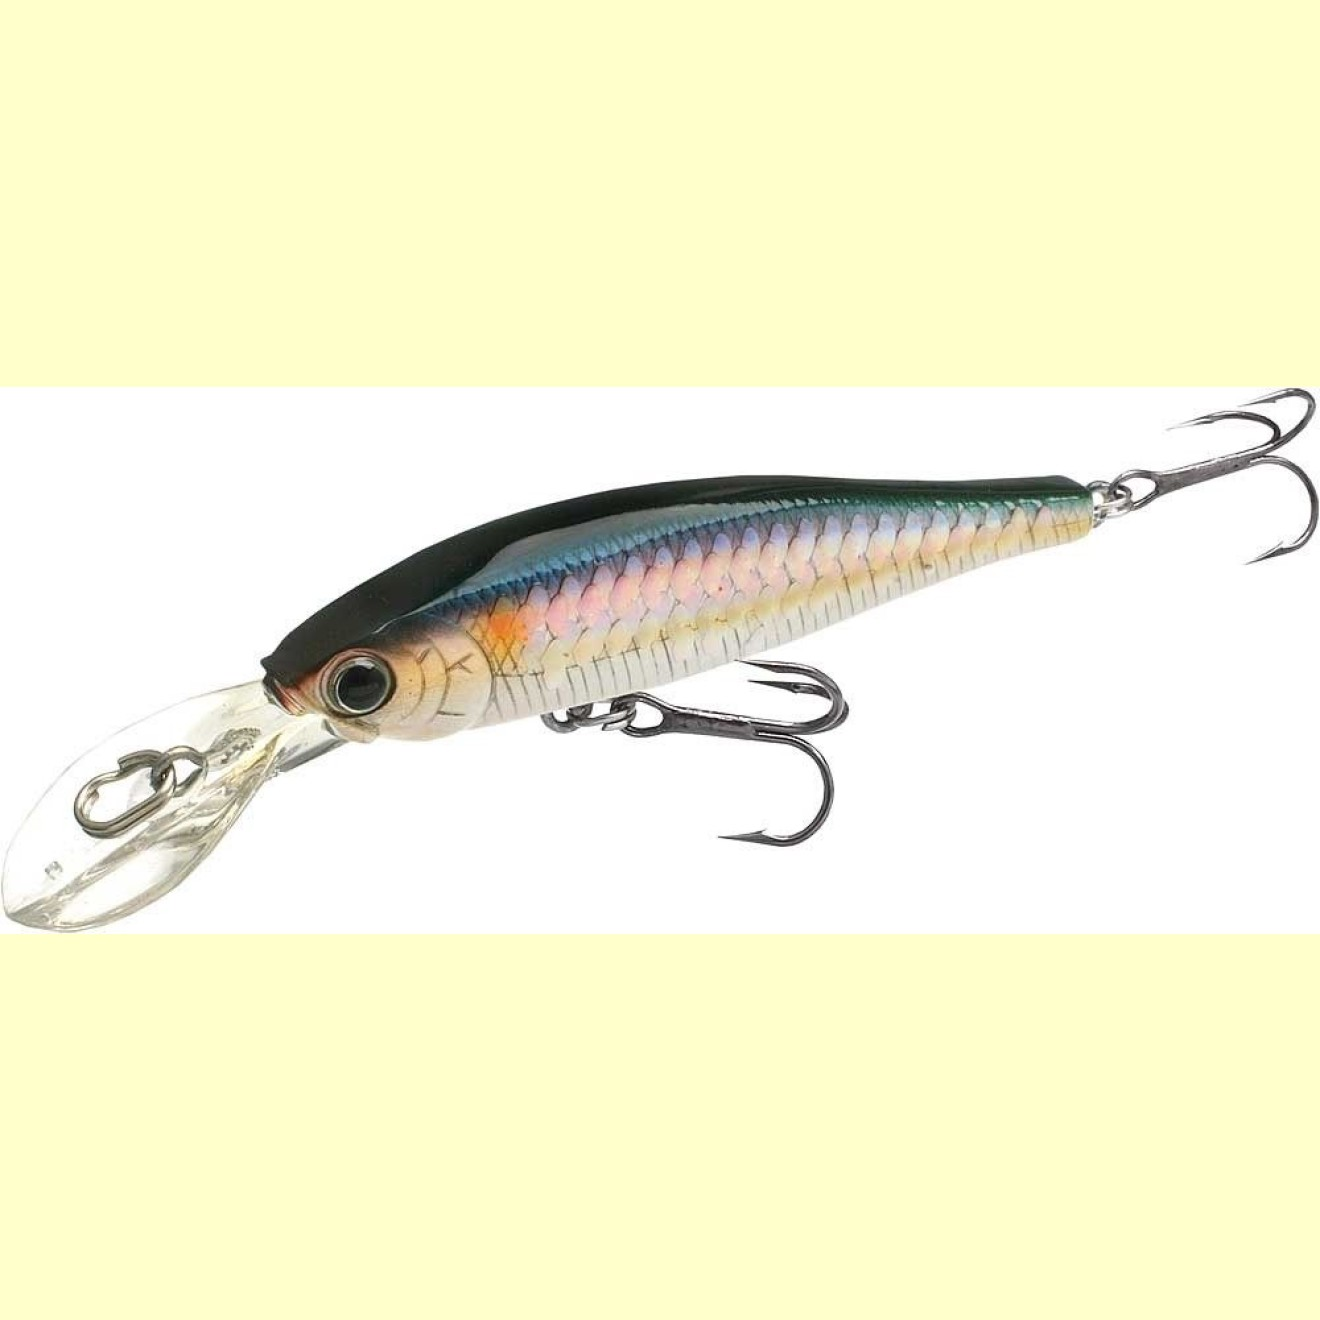 Pointer 65 DD - MS American Shad - LUCKY CRAFT